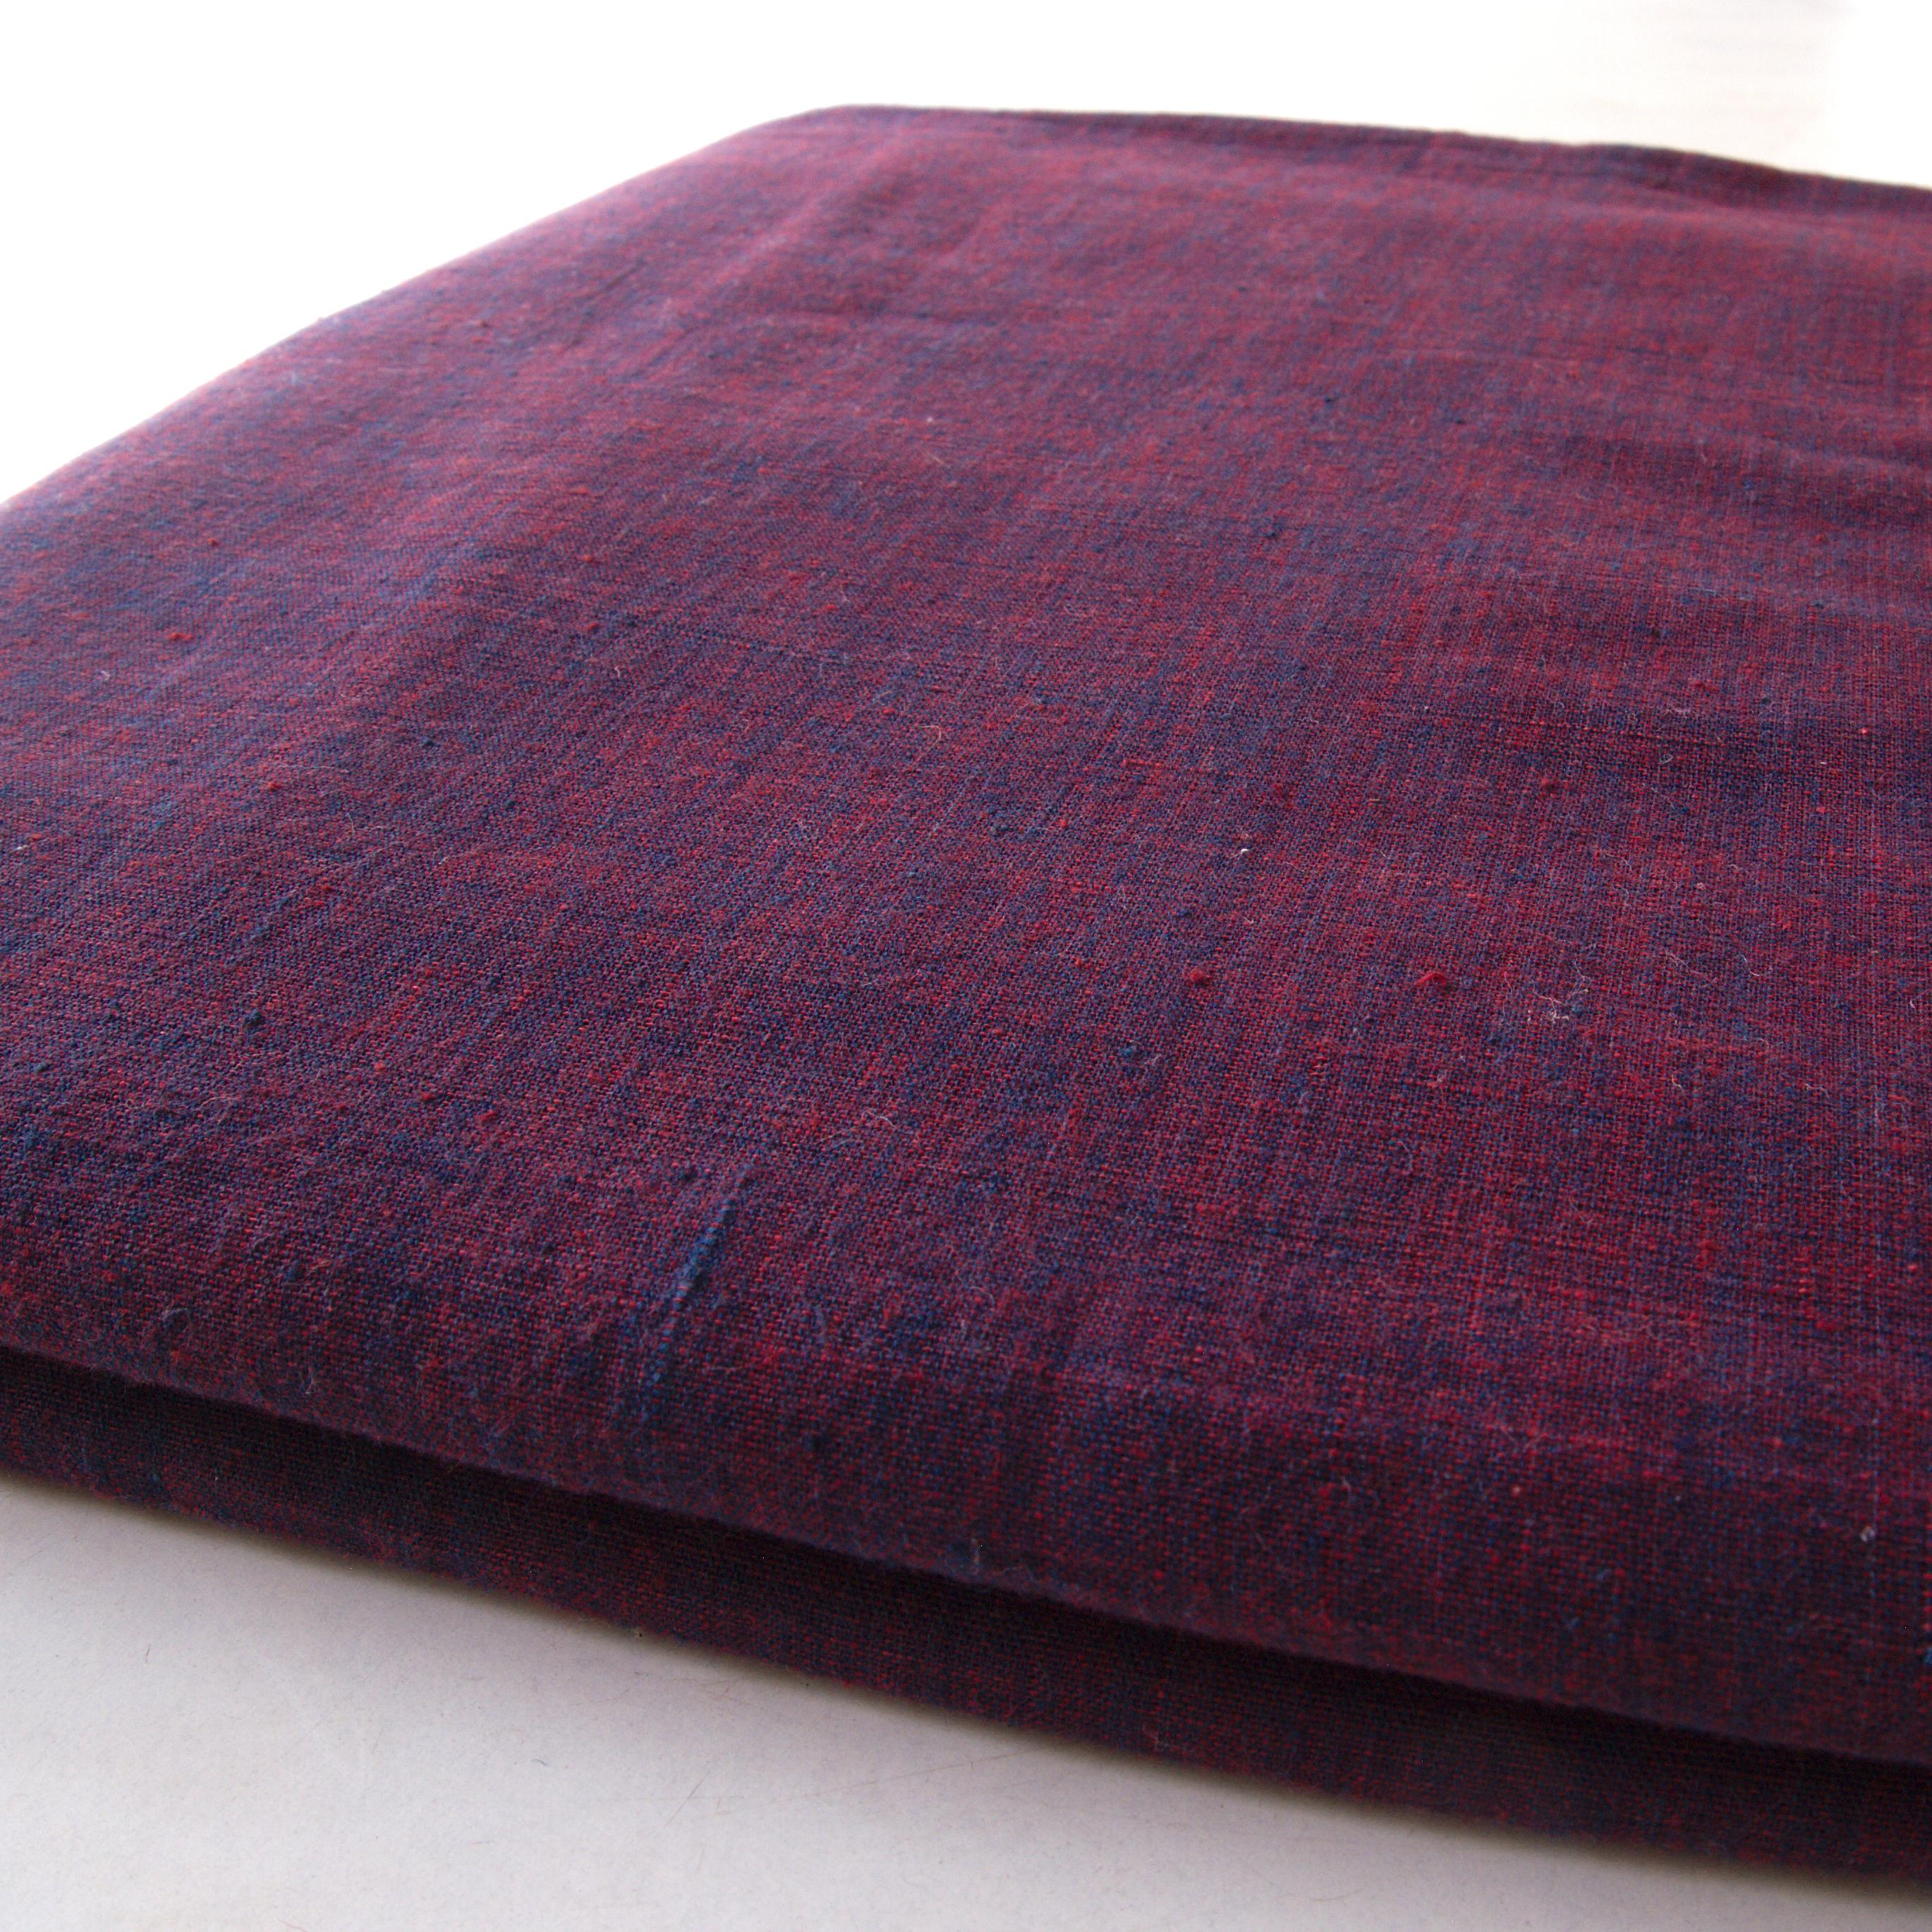 100 % Handloom Woven Cotton - Cross Colour - Natural Indigo Warp, Red Alizarin Weft - Cross Colour - Bolt